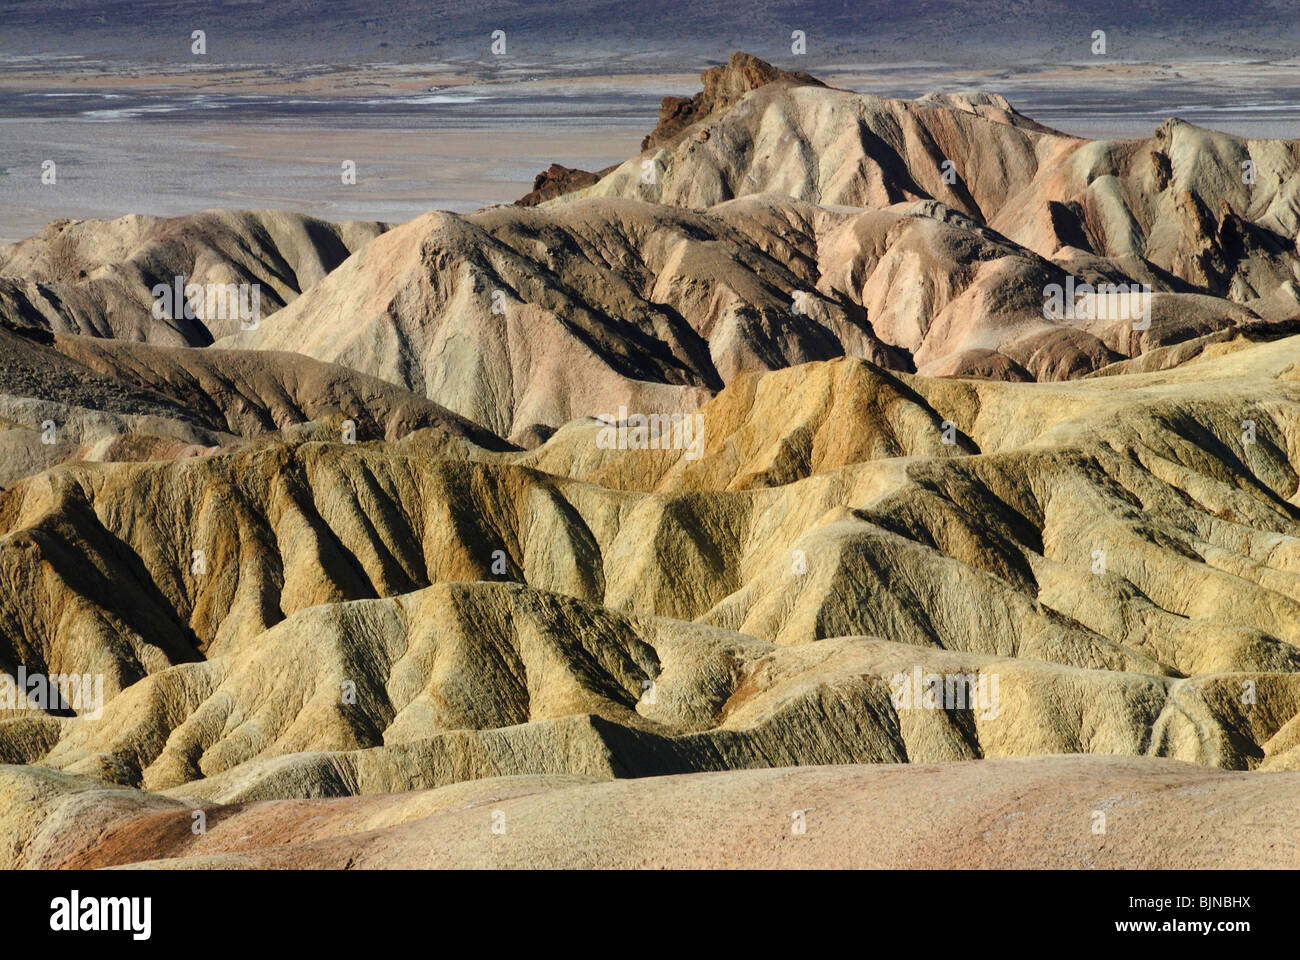 Scenic view of Zabriskie Point in Death Valley, California state - Stock Image